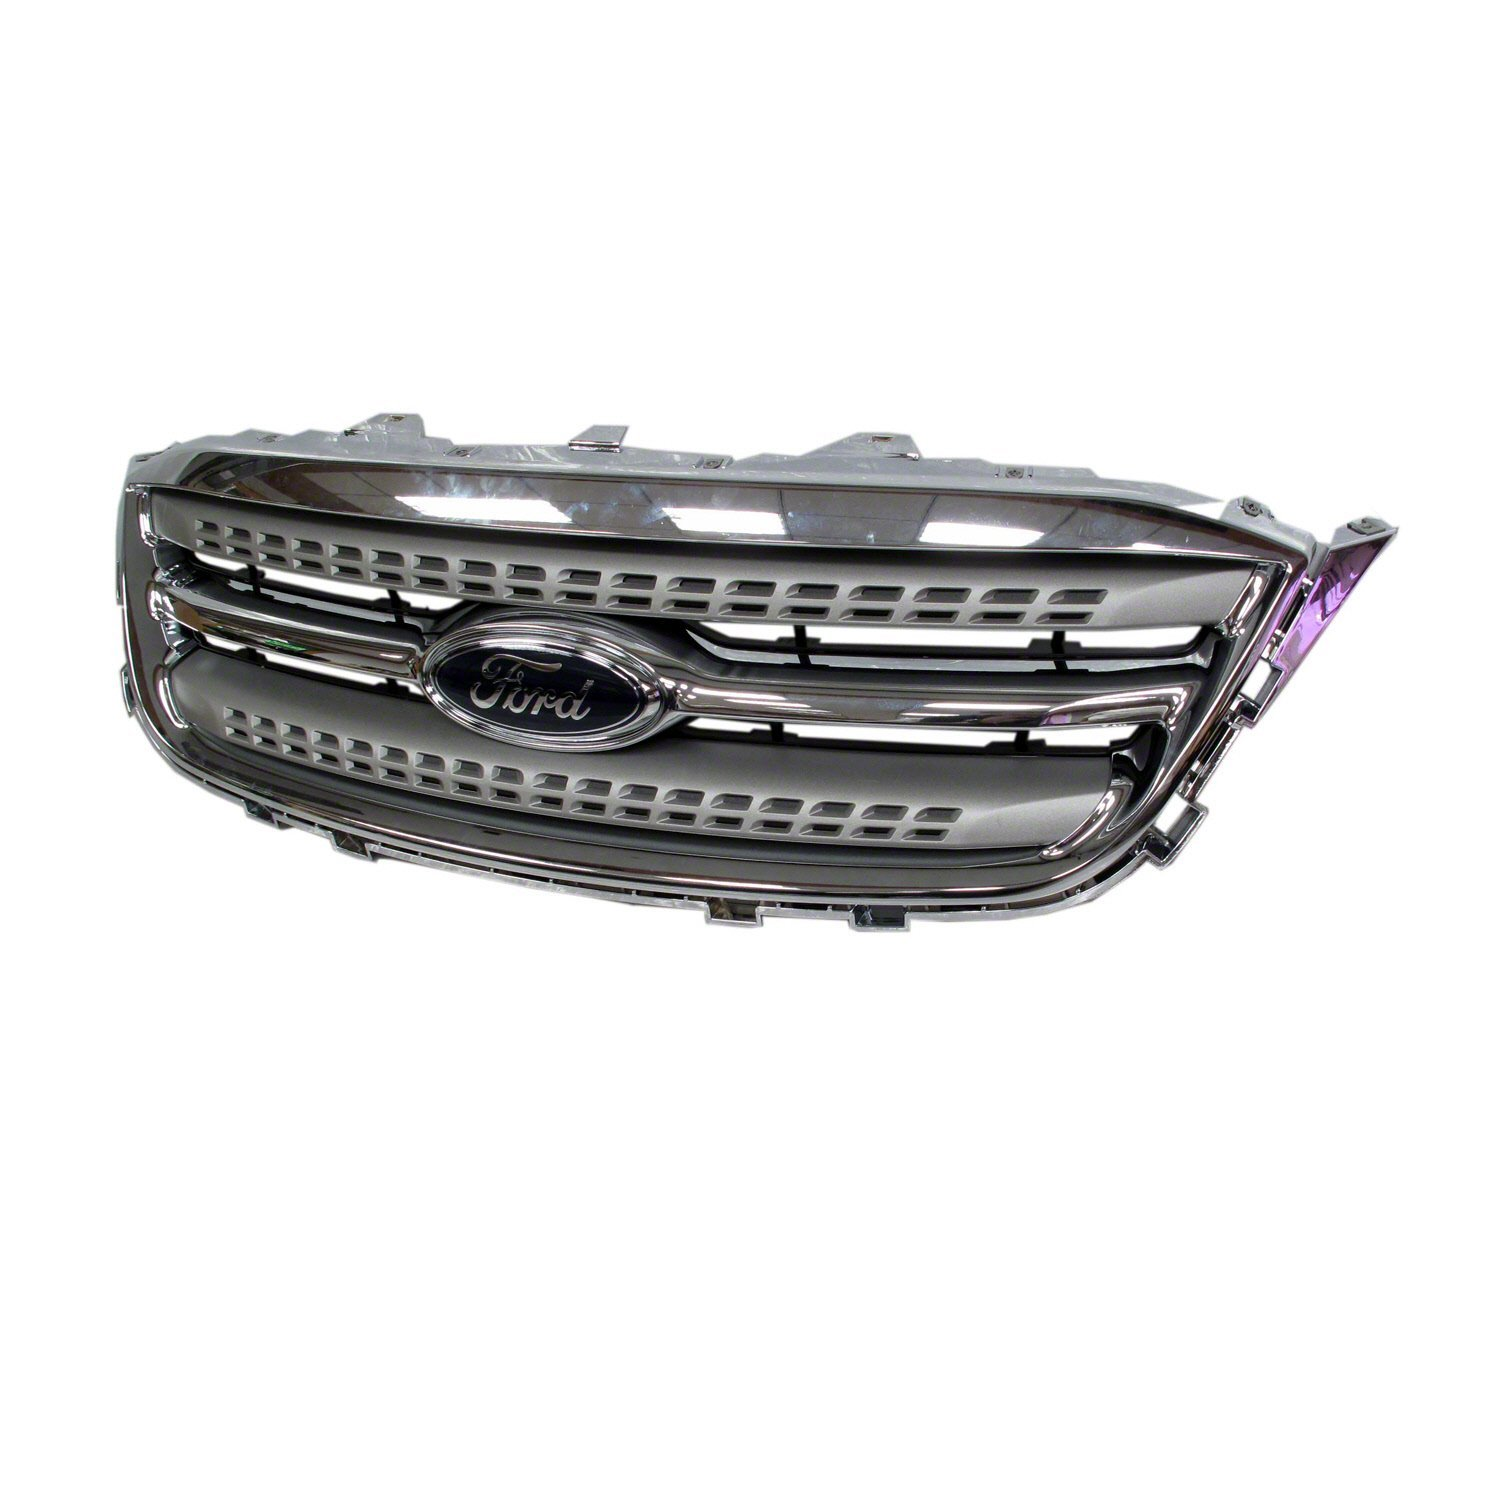 Crash Parts Plus Chrome CAPA Grille Assembly for 2010-2012 Ford Taurus FO1200525